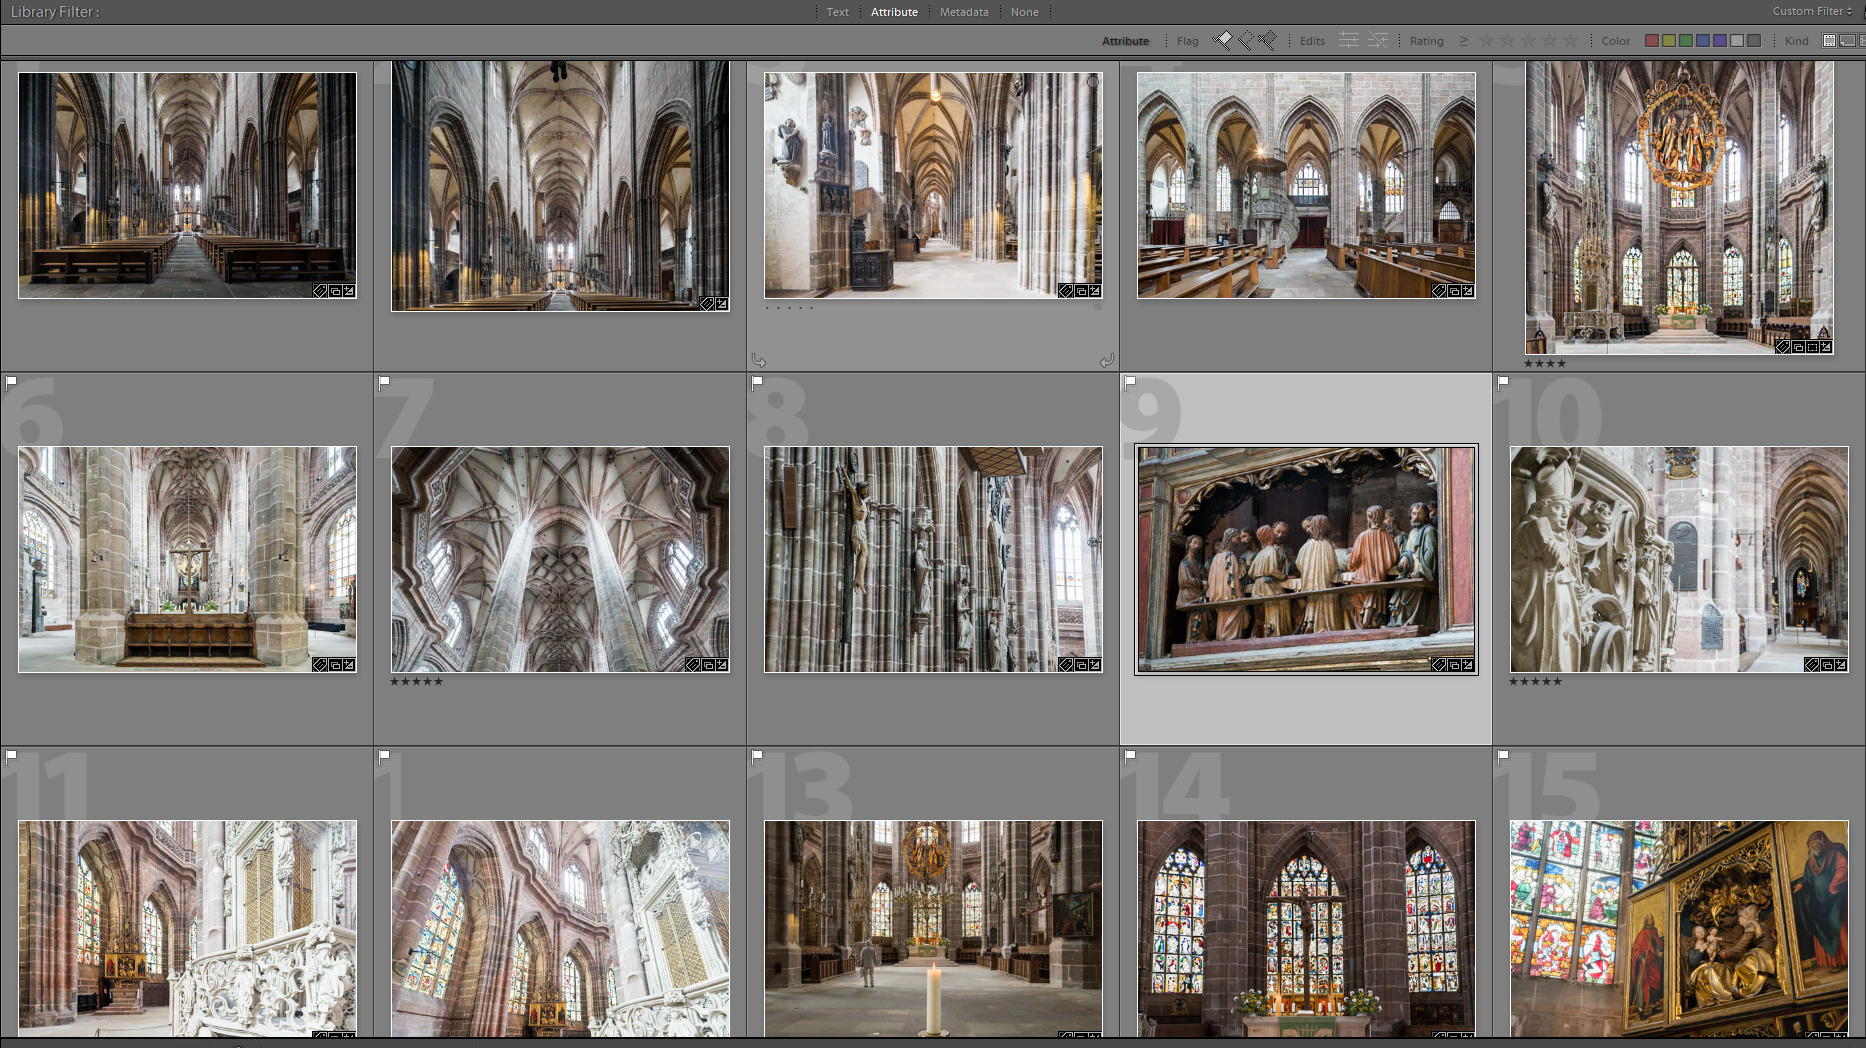 A screenshot of a folder of images from a church, as seen in Lightroom.